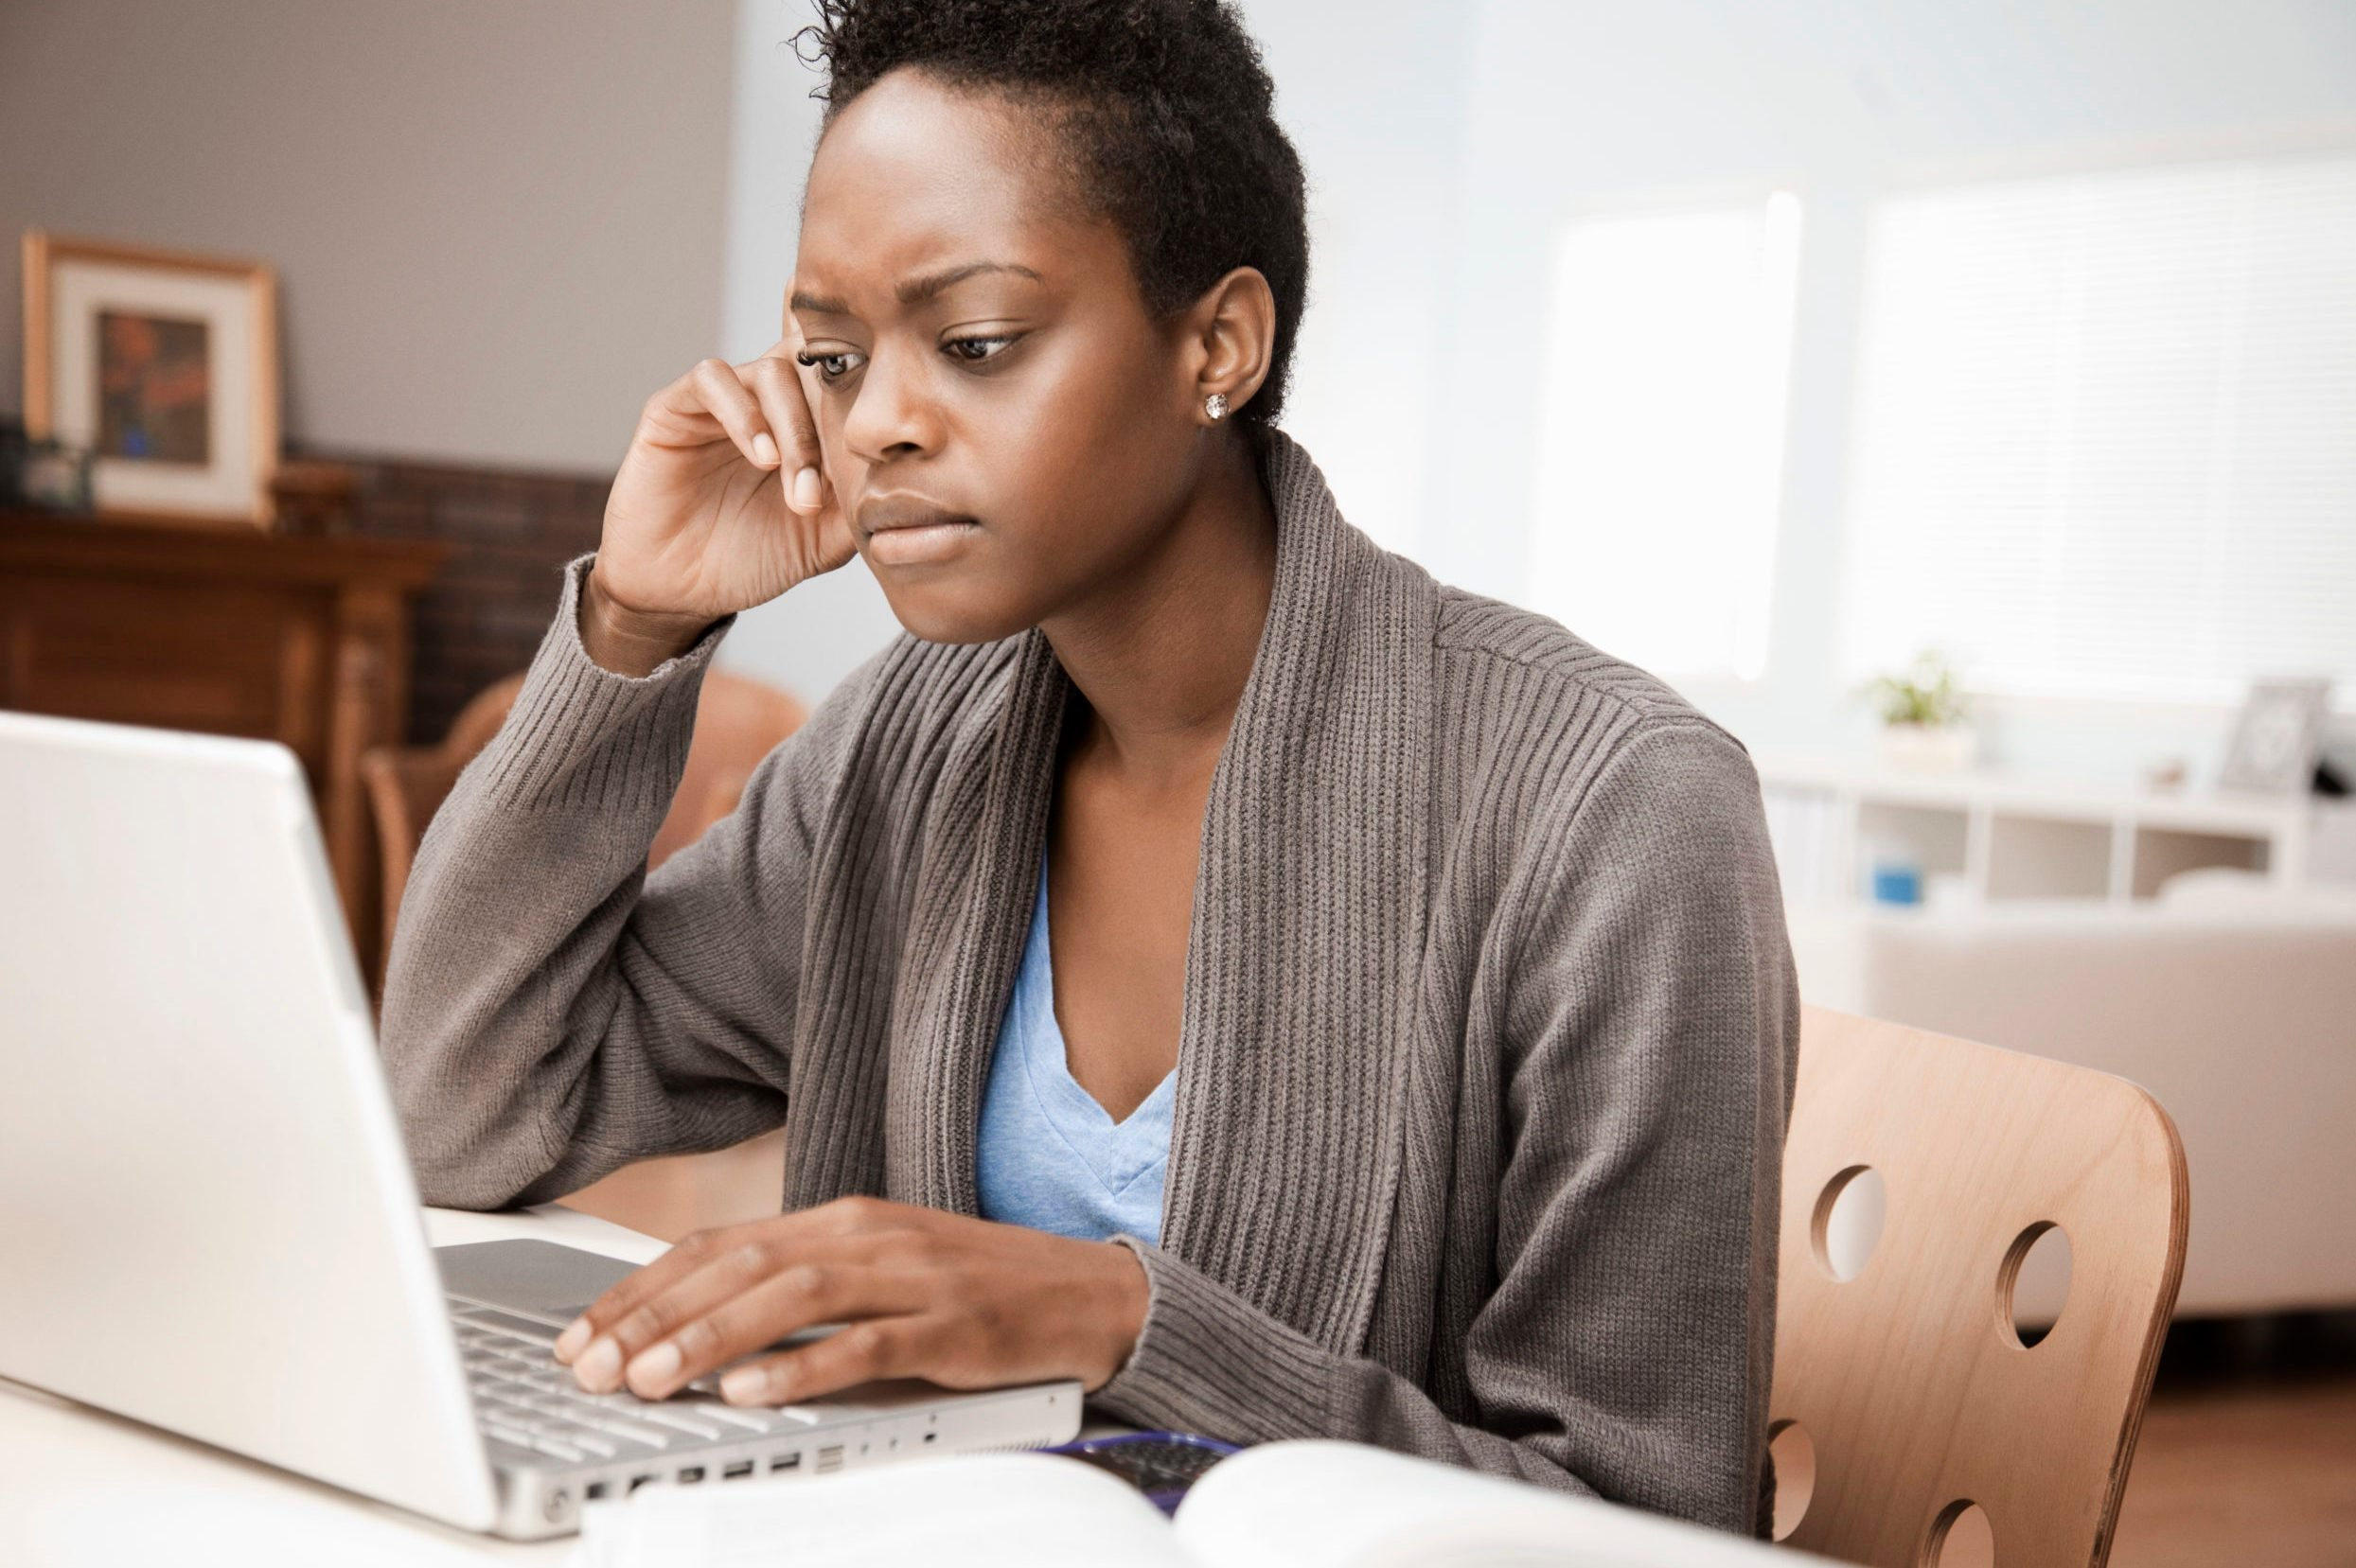 African American woman working in home office